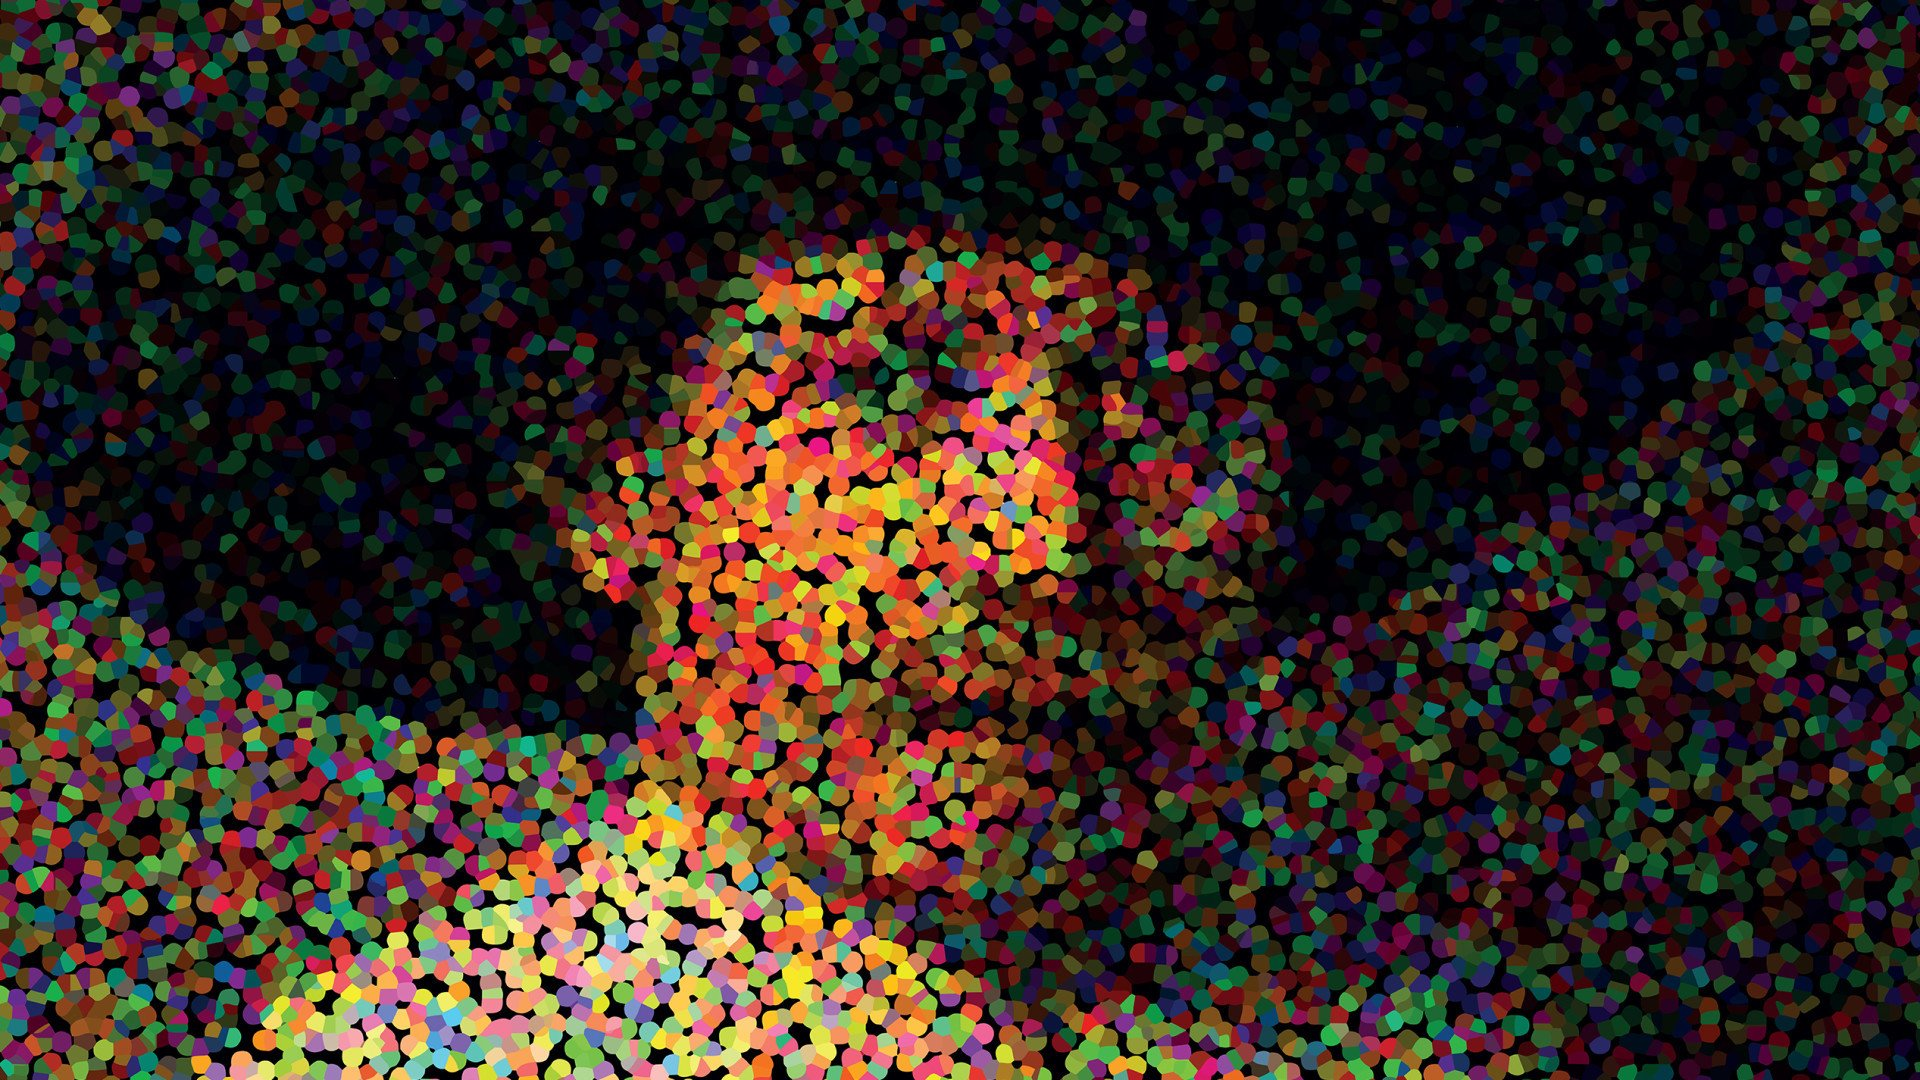 The Next Rembrandt 3D Bolidt